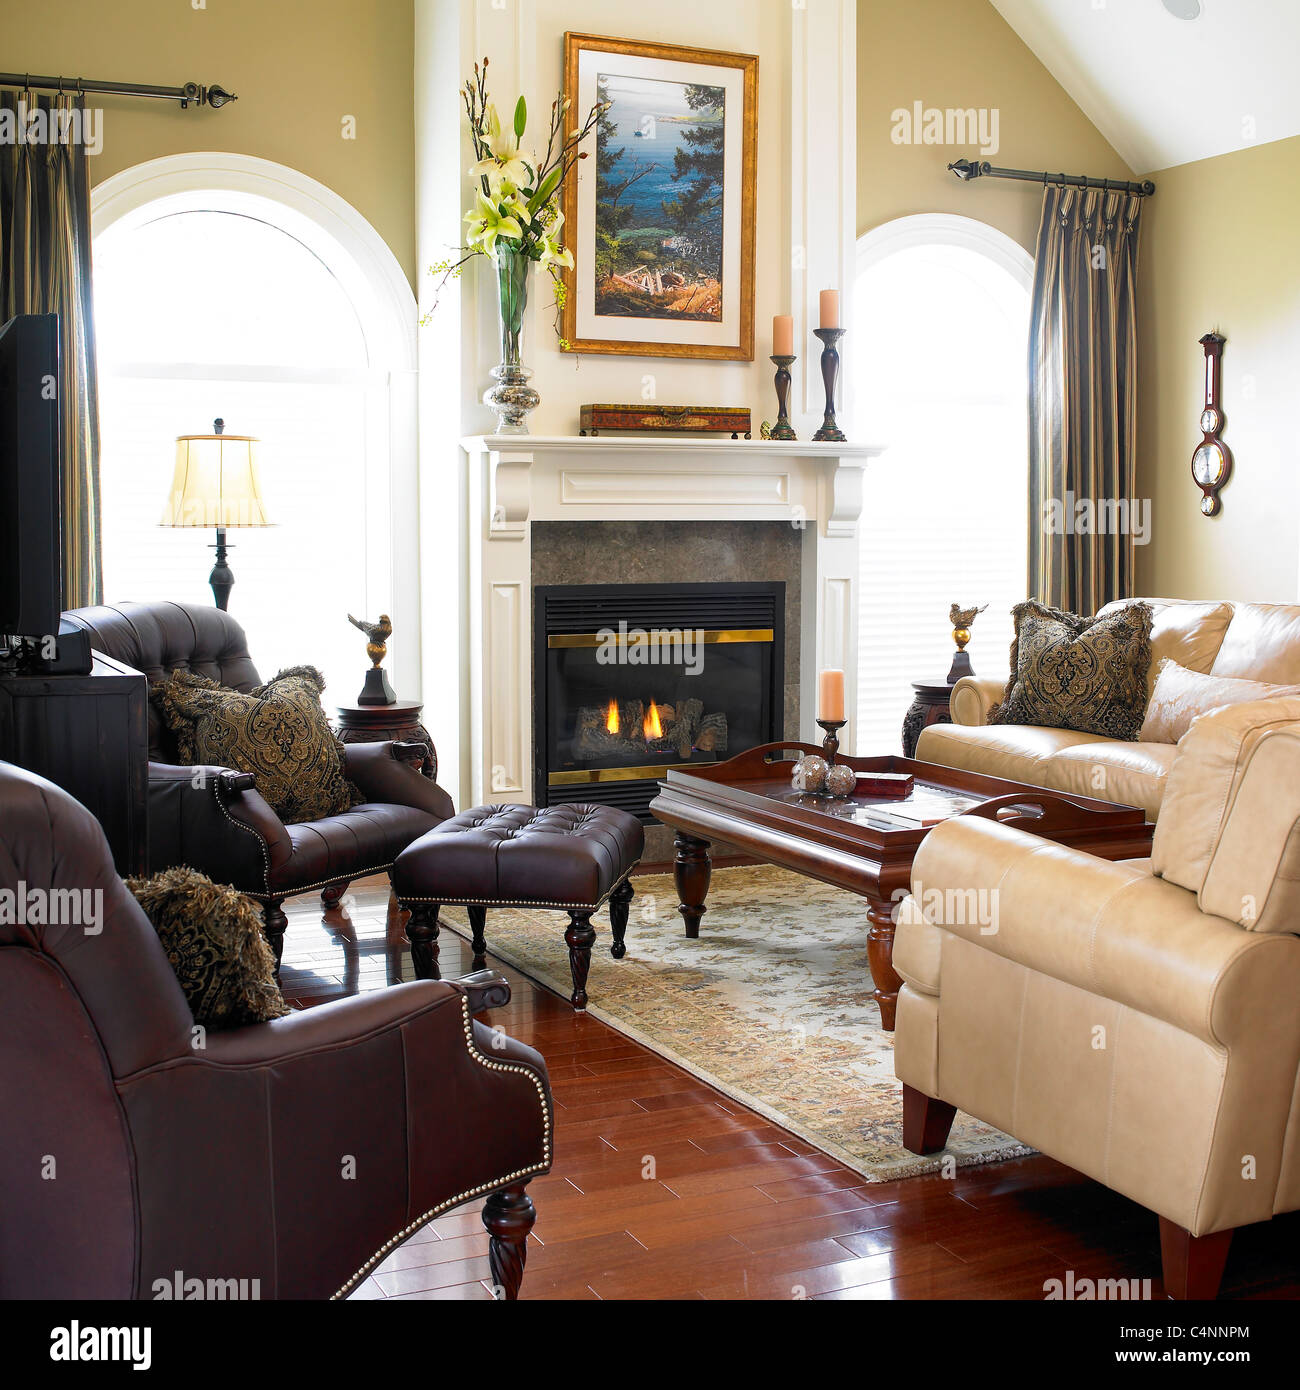 Contemporary Living Room With Leather Furniture And Fireplace Stock Photo Alamy